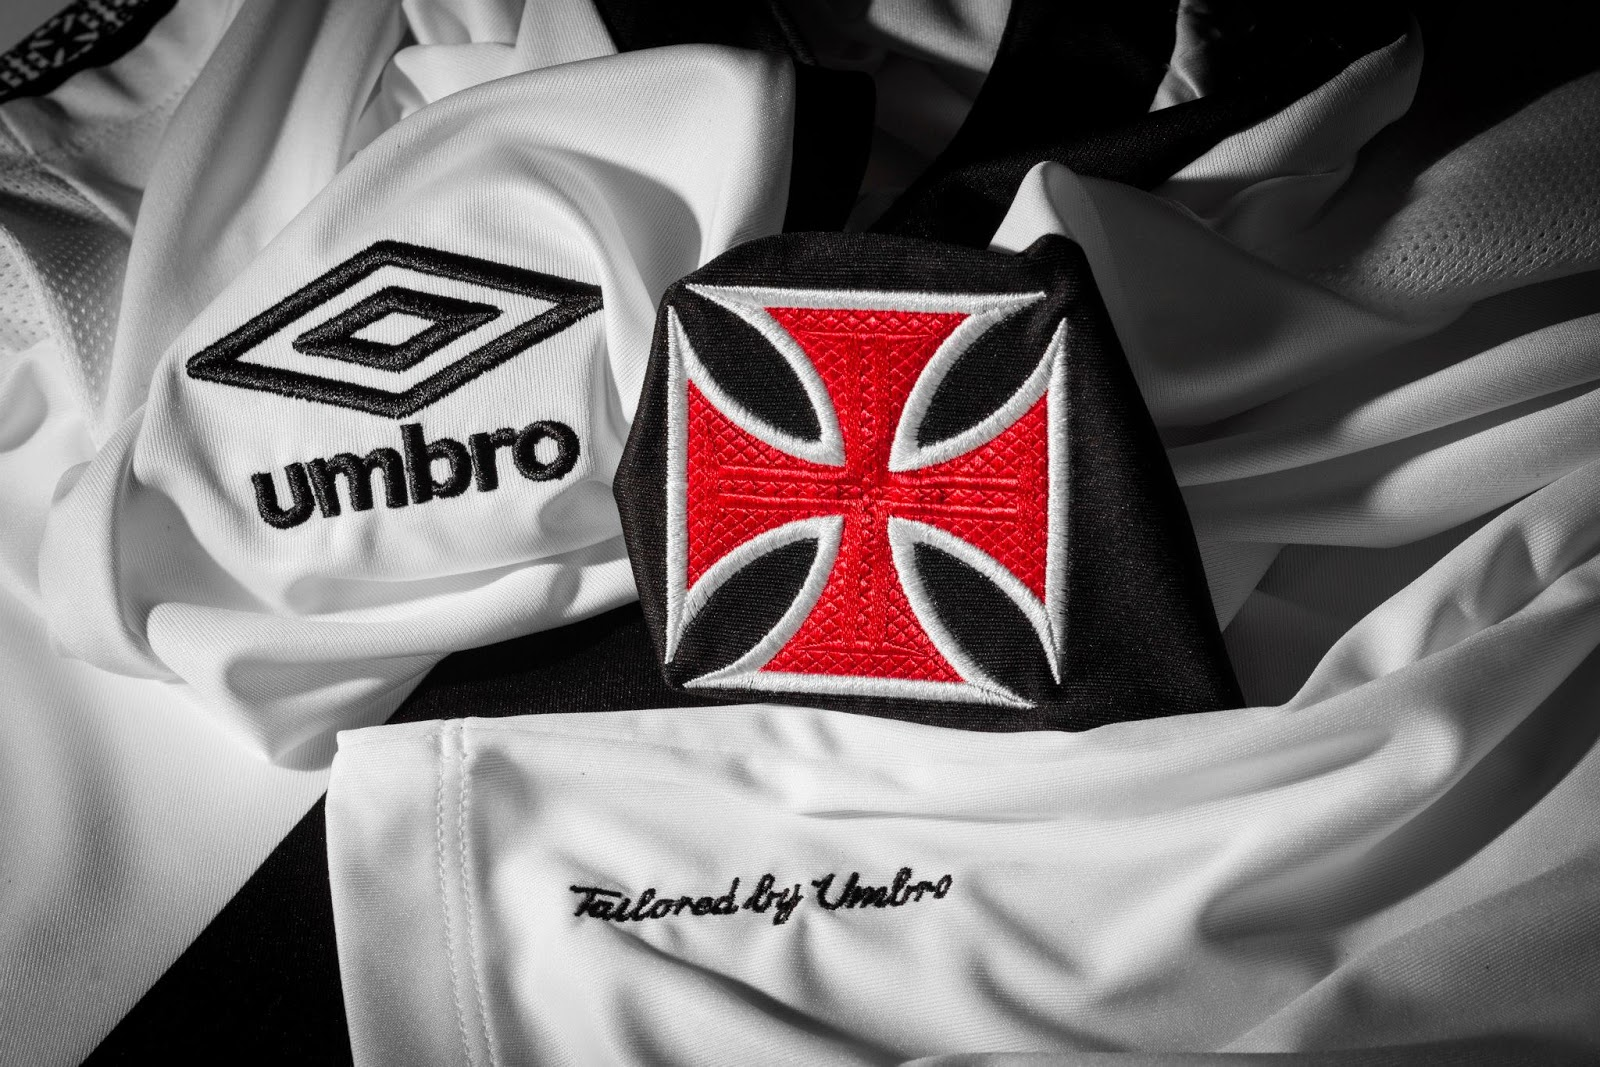 Umbro Vasco da Gama 2014-2015 Kits Released - Footy Headlines